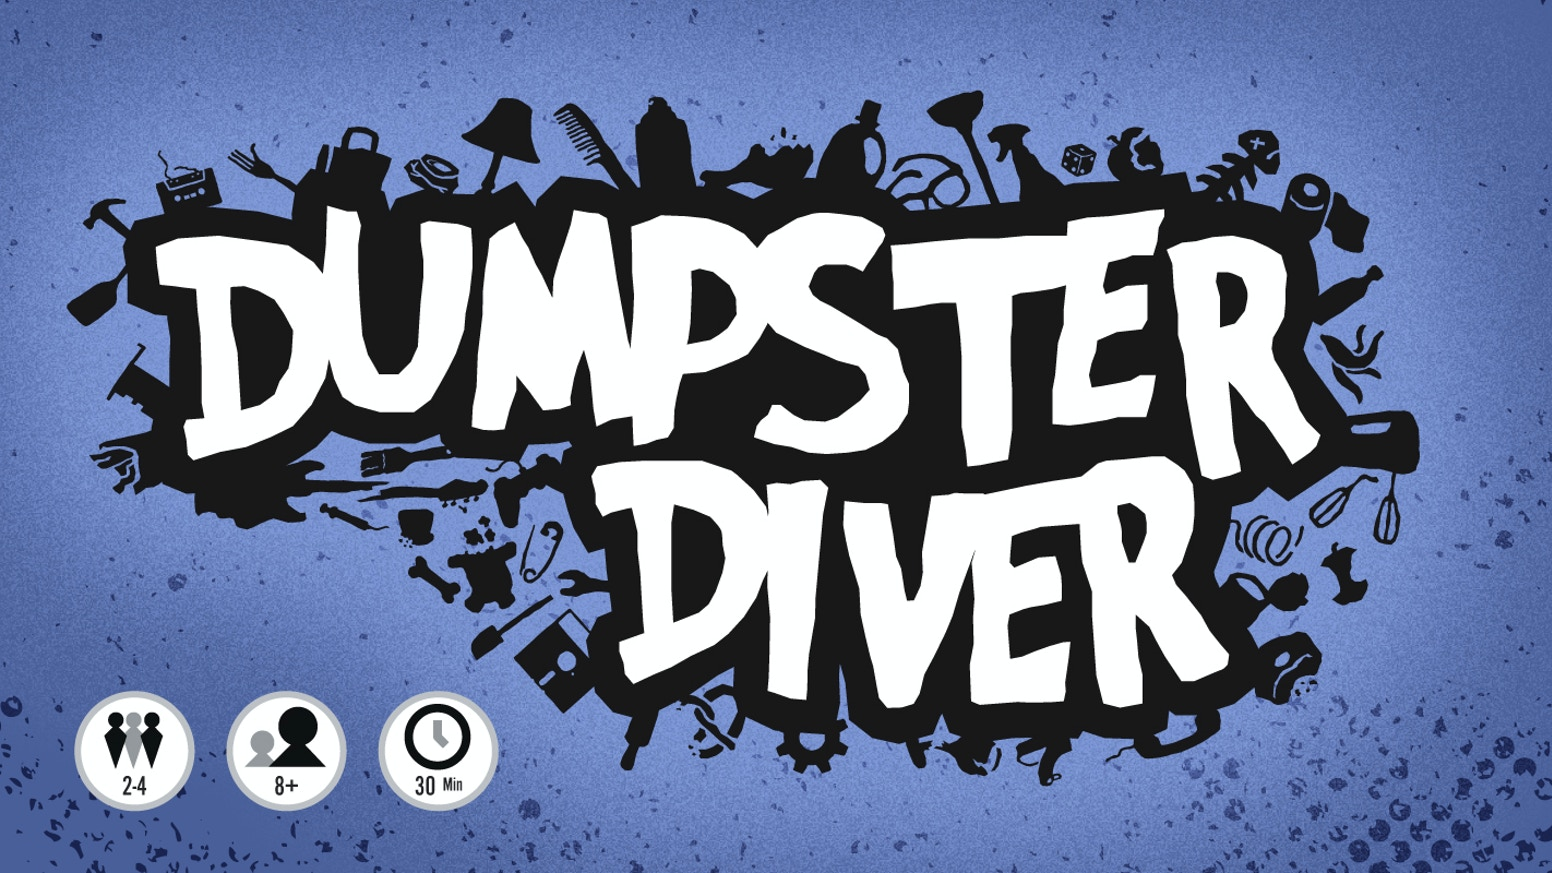 Dumpster Diver is a fast and easy card game about turning trash into glorious treasure.